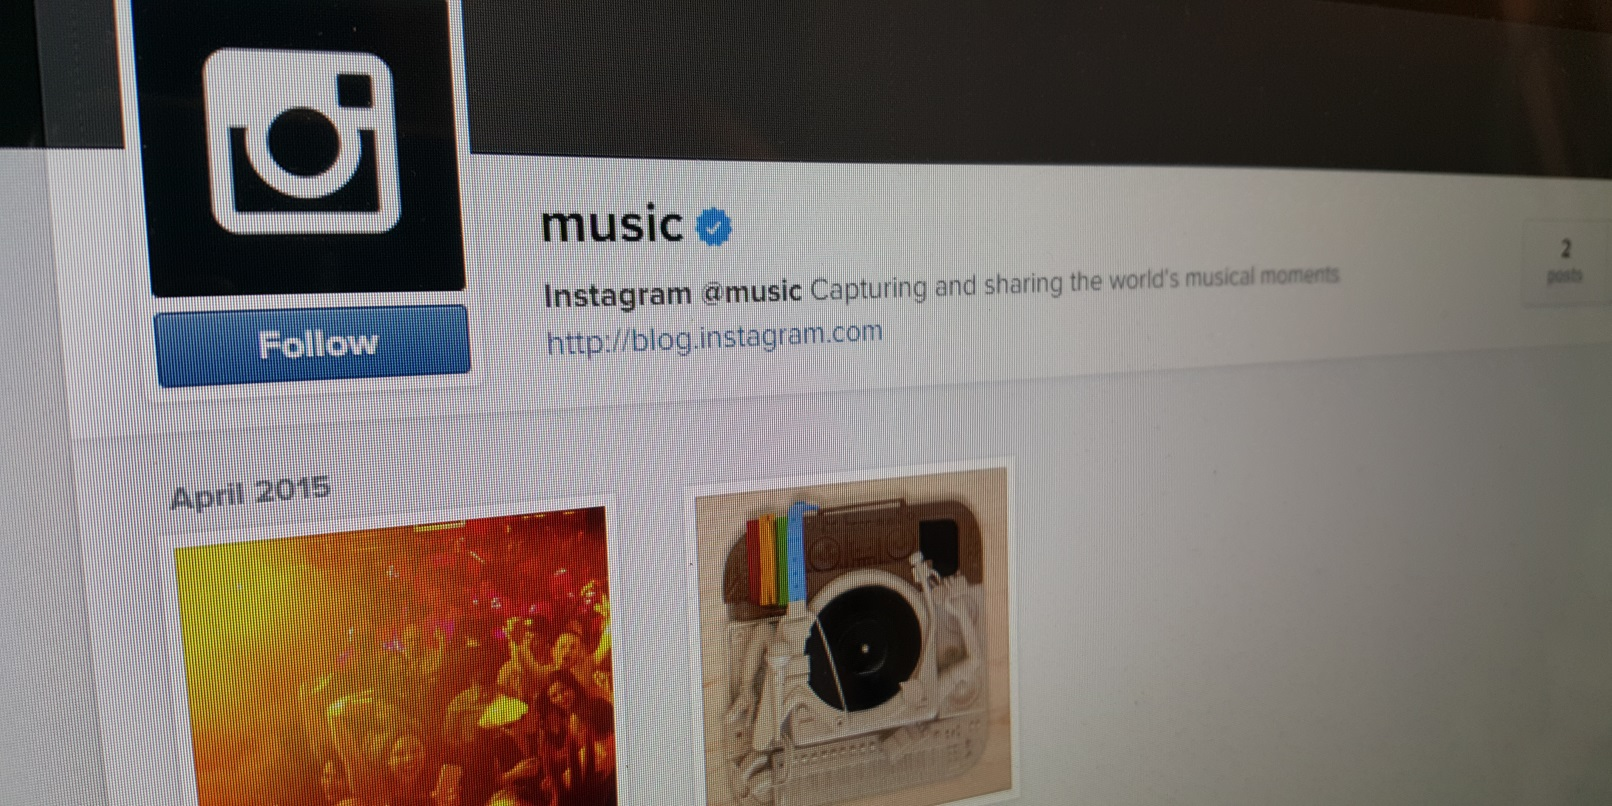 Instagram wants its @music account to be a discovery tool and community all-in-one